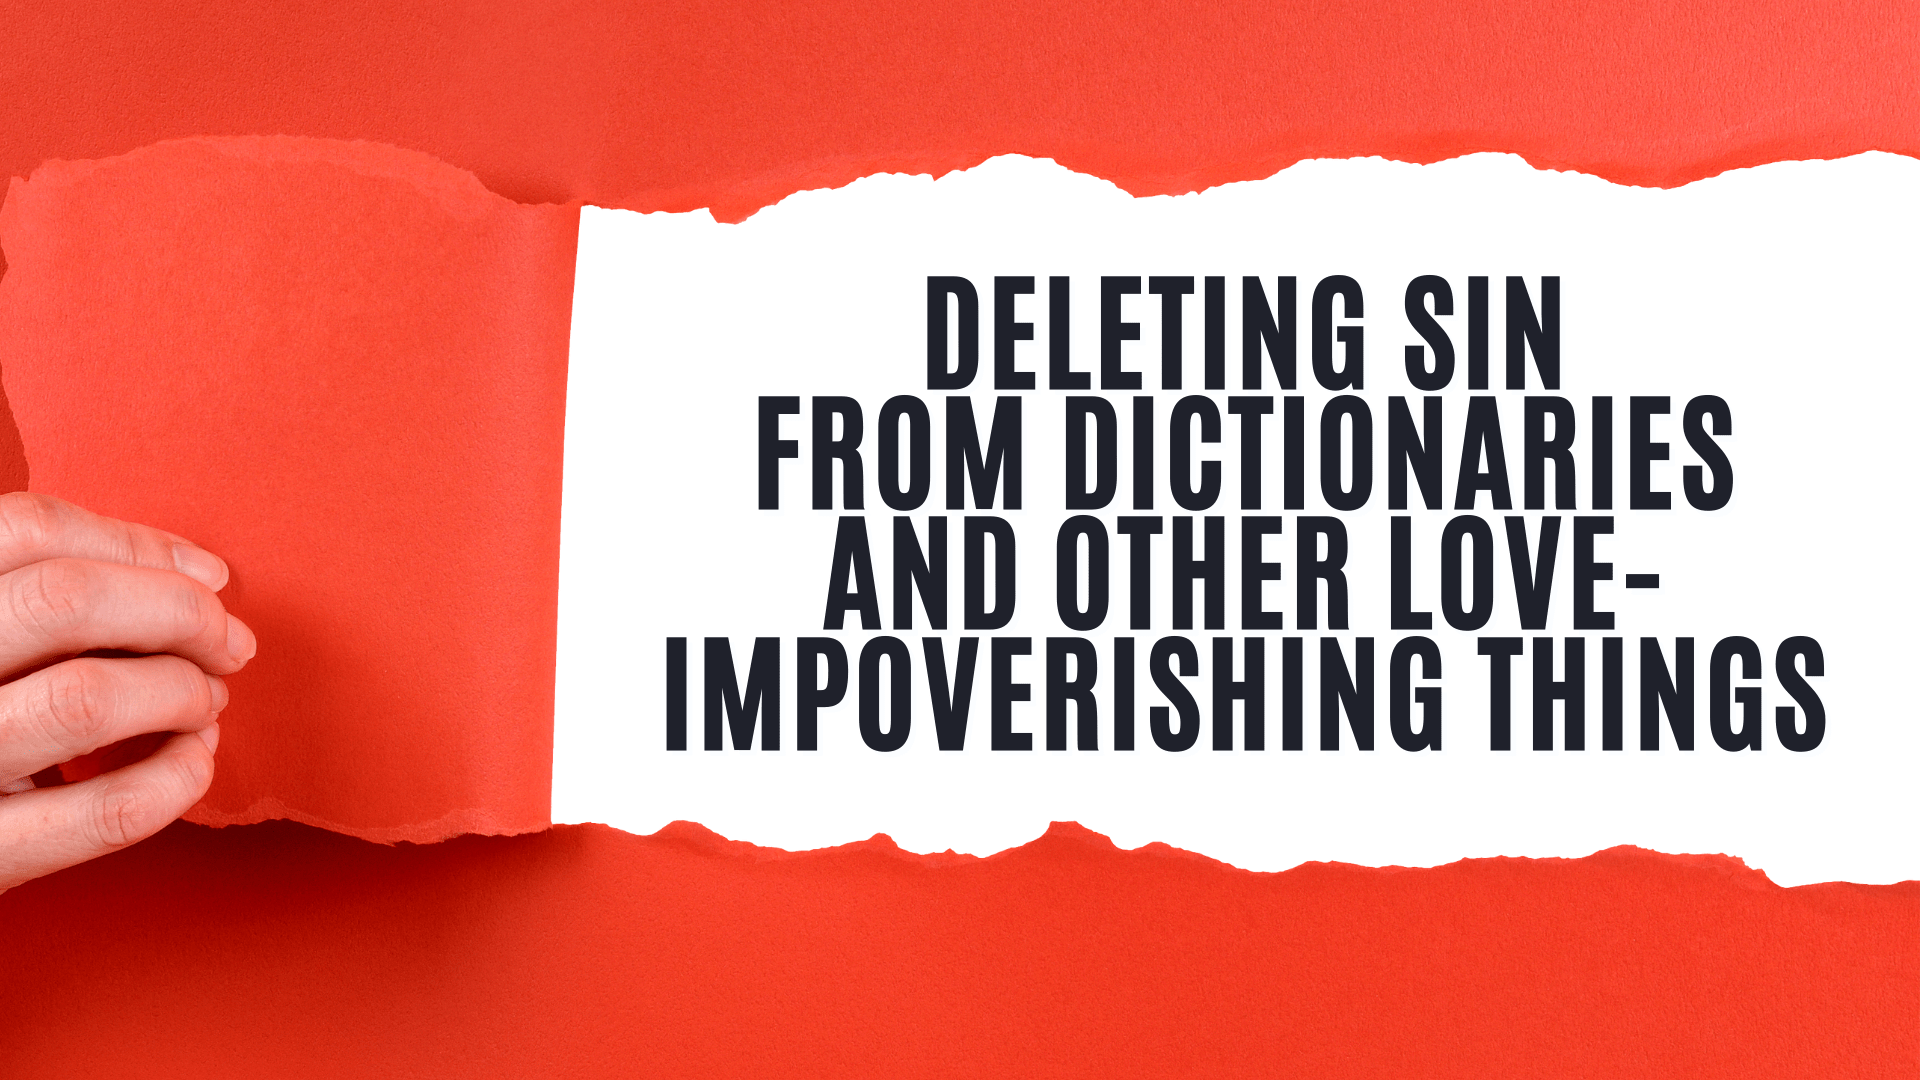 Deleting words from dictionaries and other love-impoverishing things